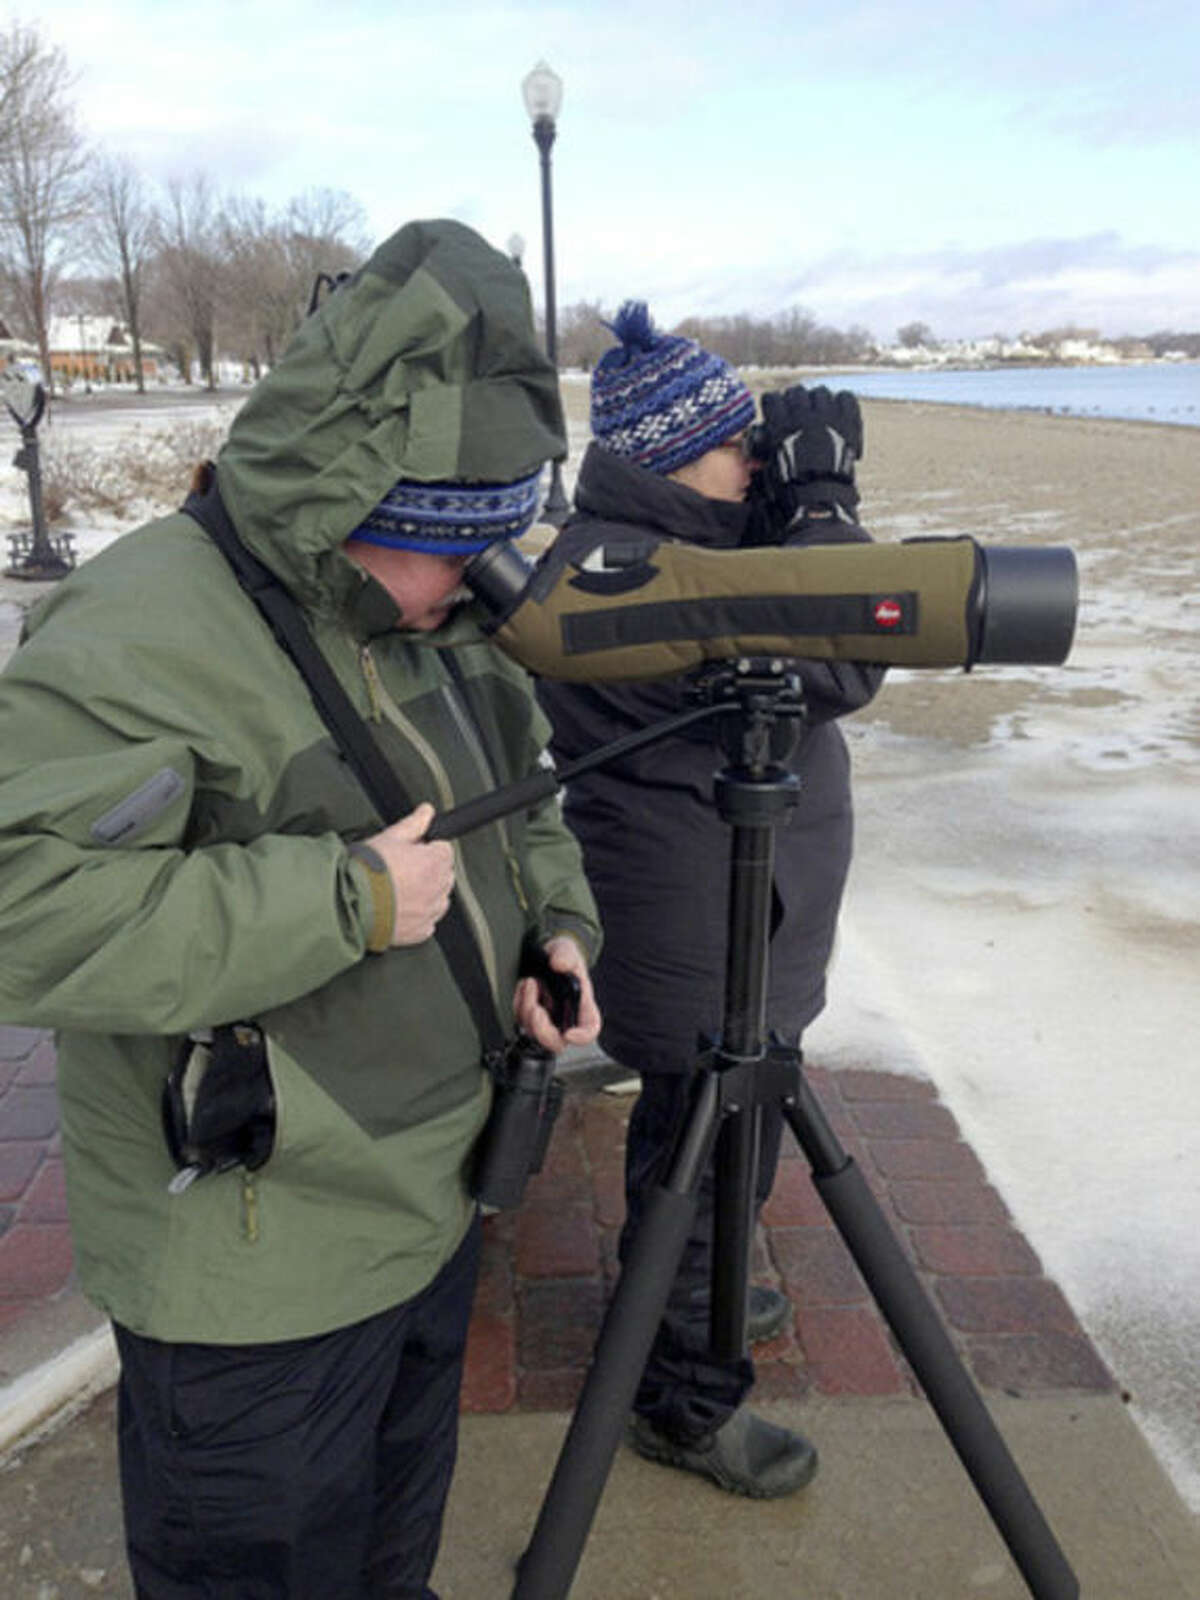 Hour photo / Chris Bosak Townsend and Mardi Dickinson of Norwalk look for birds at Calf Pasture Beach during Sunday's Christmas Bird Count.